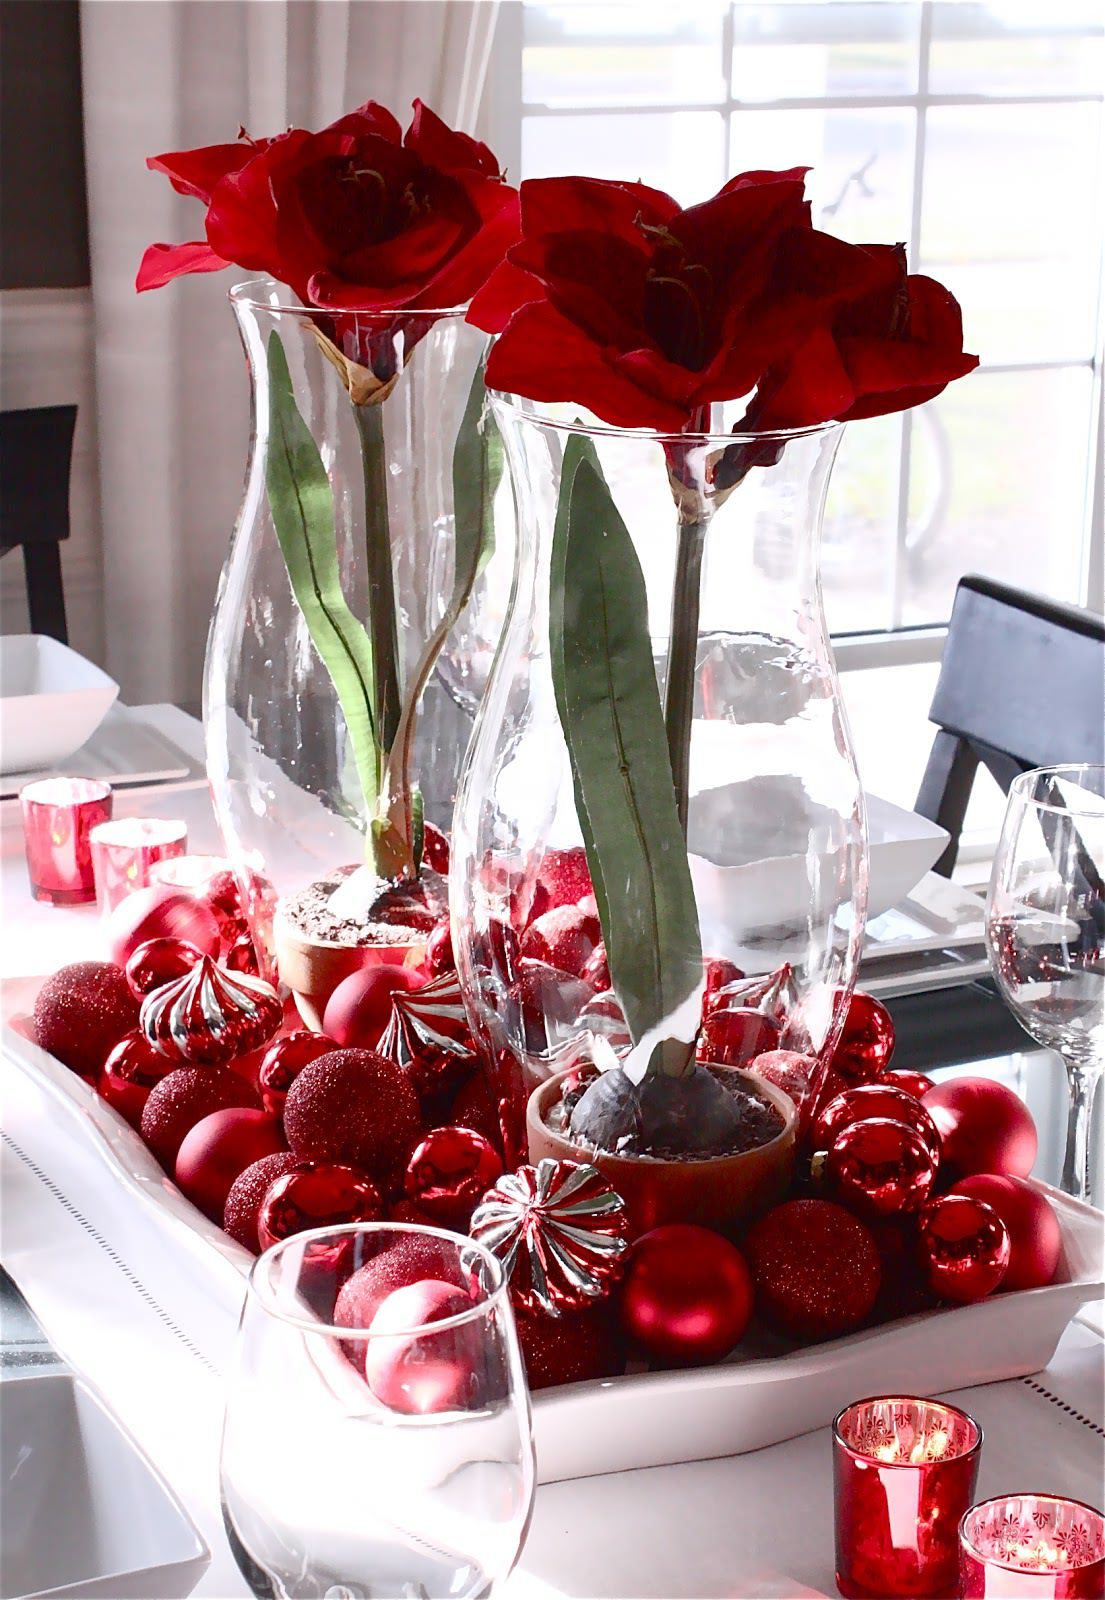 Big Wine Glasses For Centerpieces Bowl Red Glasses Of Candlelights Also Christmas Flower Decorations Christmas Table Decorations Christmas Centerpieces